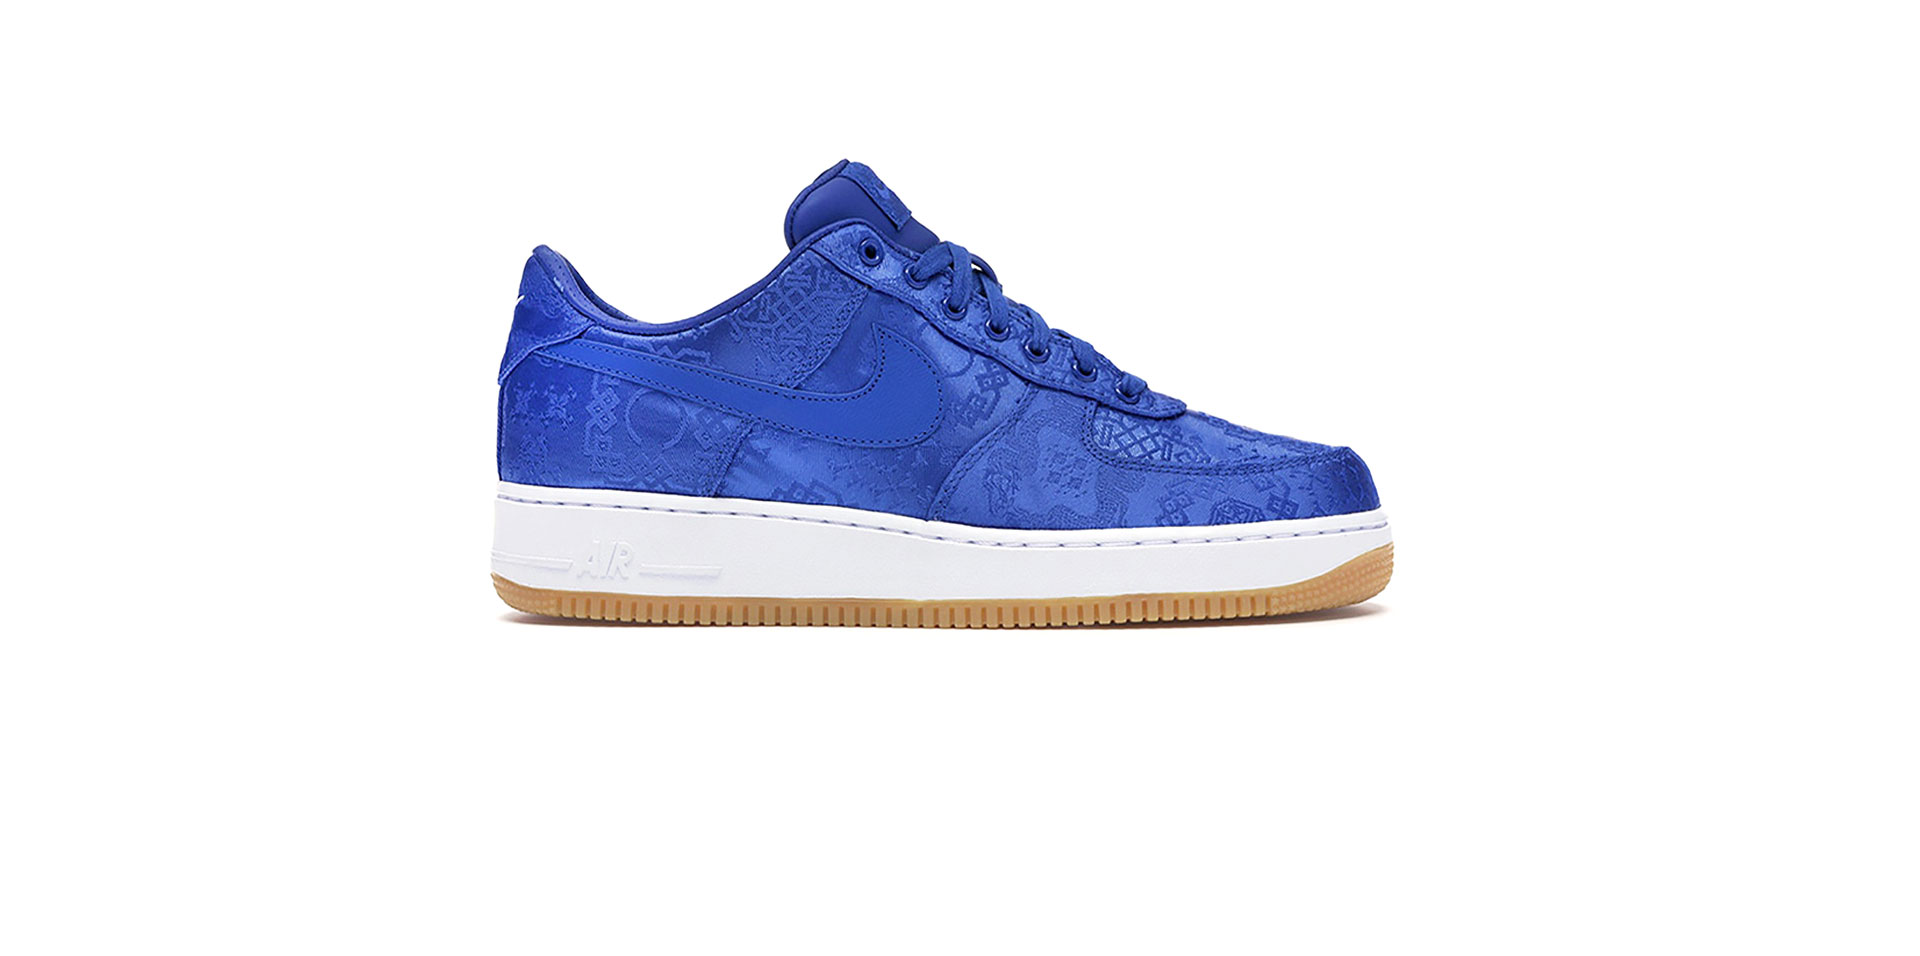 NIKE X CLOT AIR FORCE 1 PREMIUM - GAME ROYAL/WHITE-GUM LIGHT BROWN